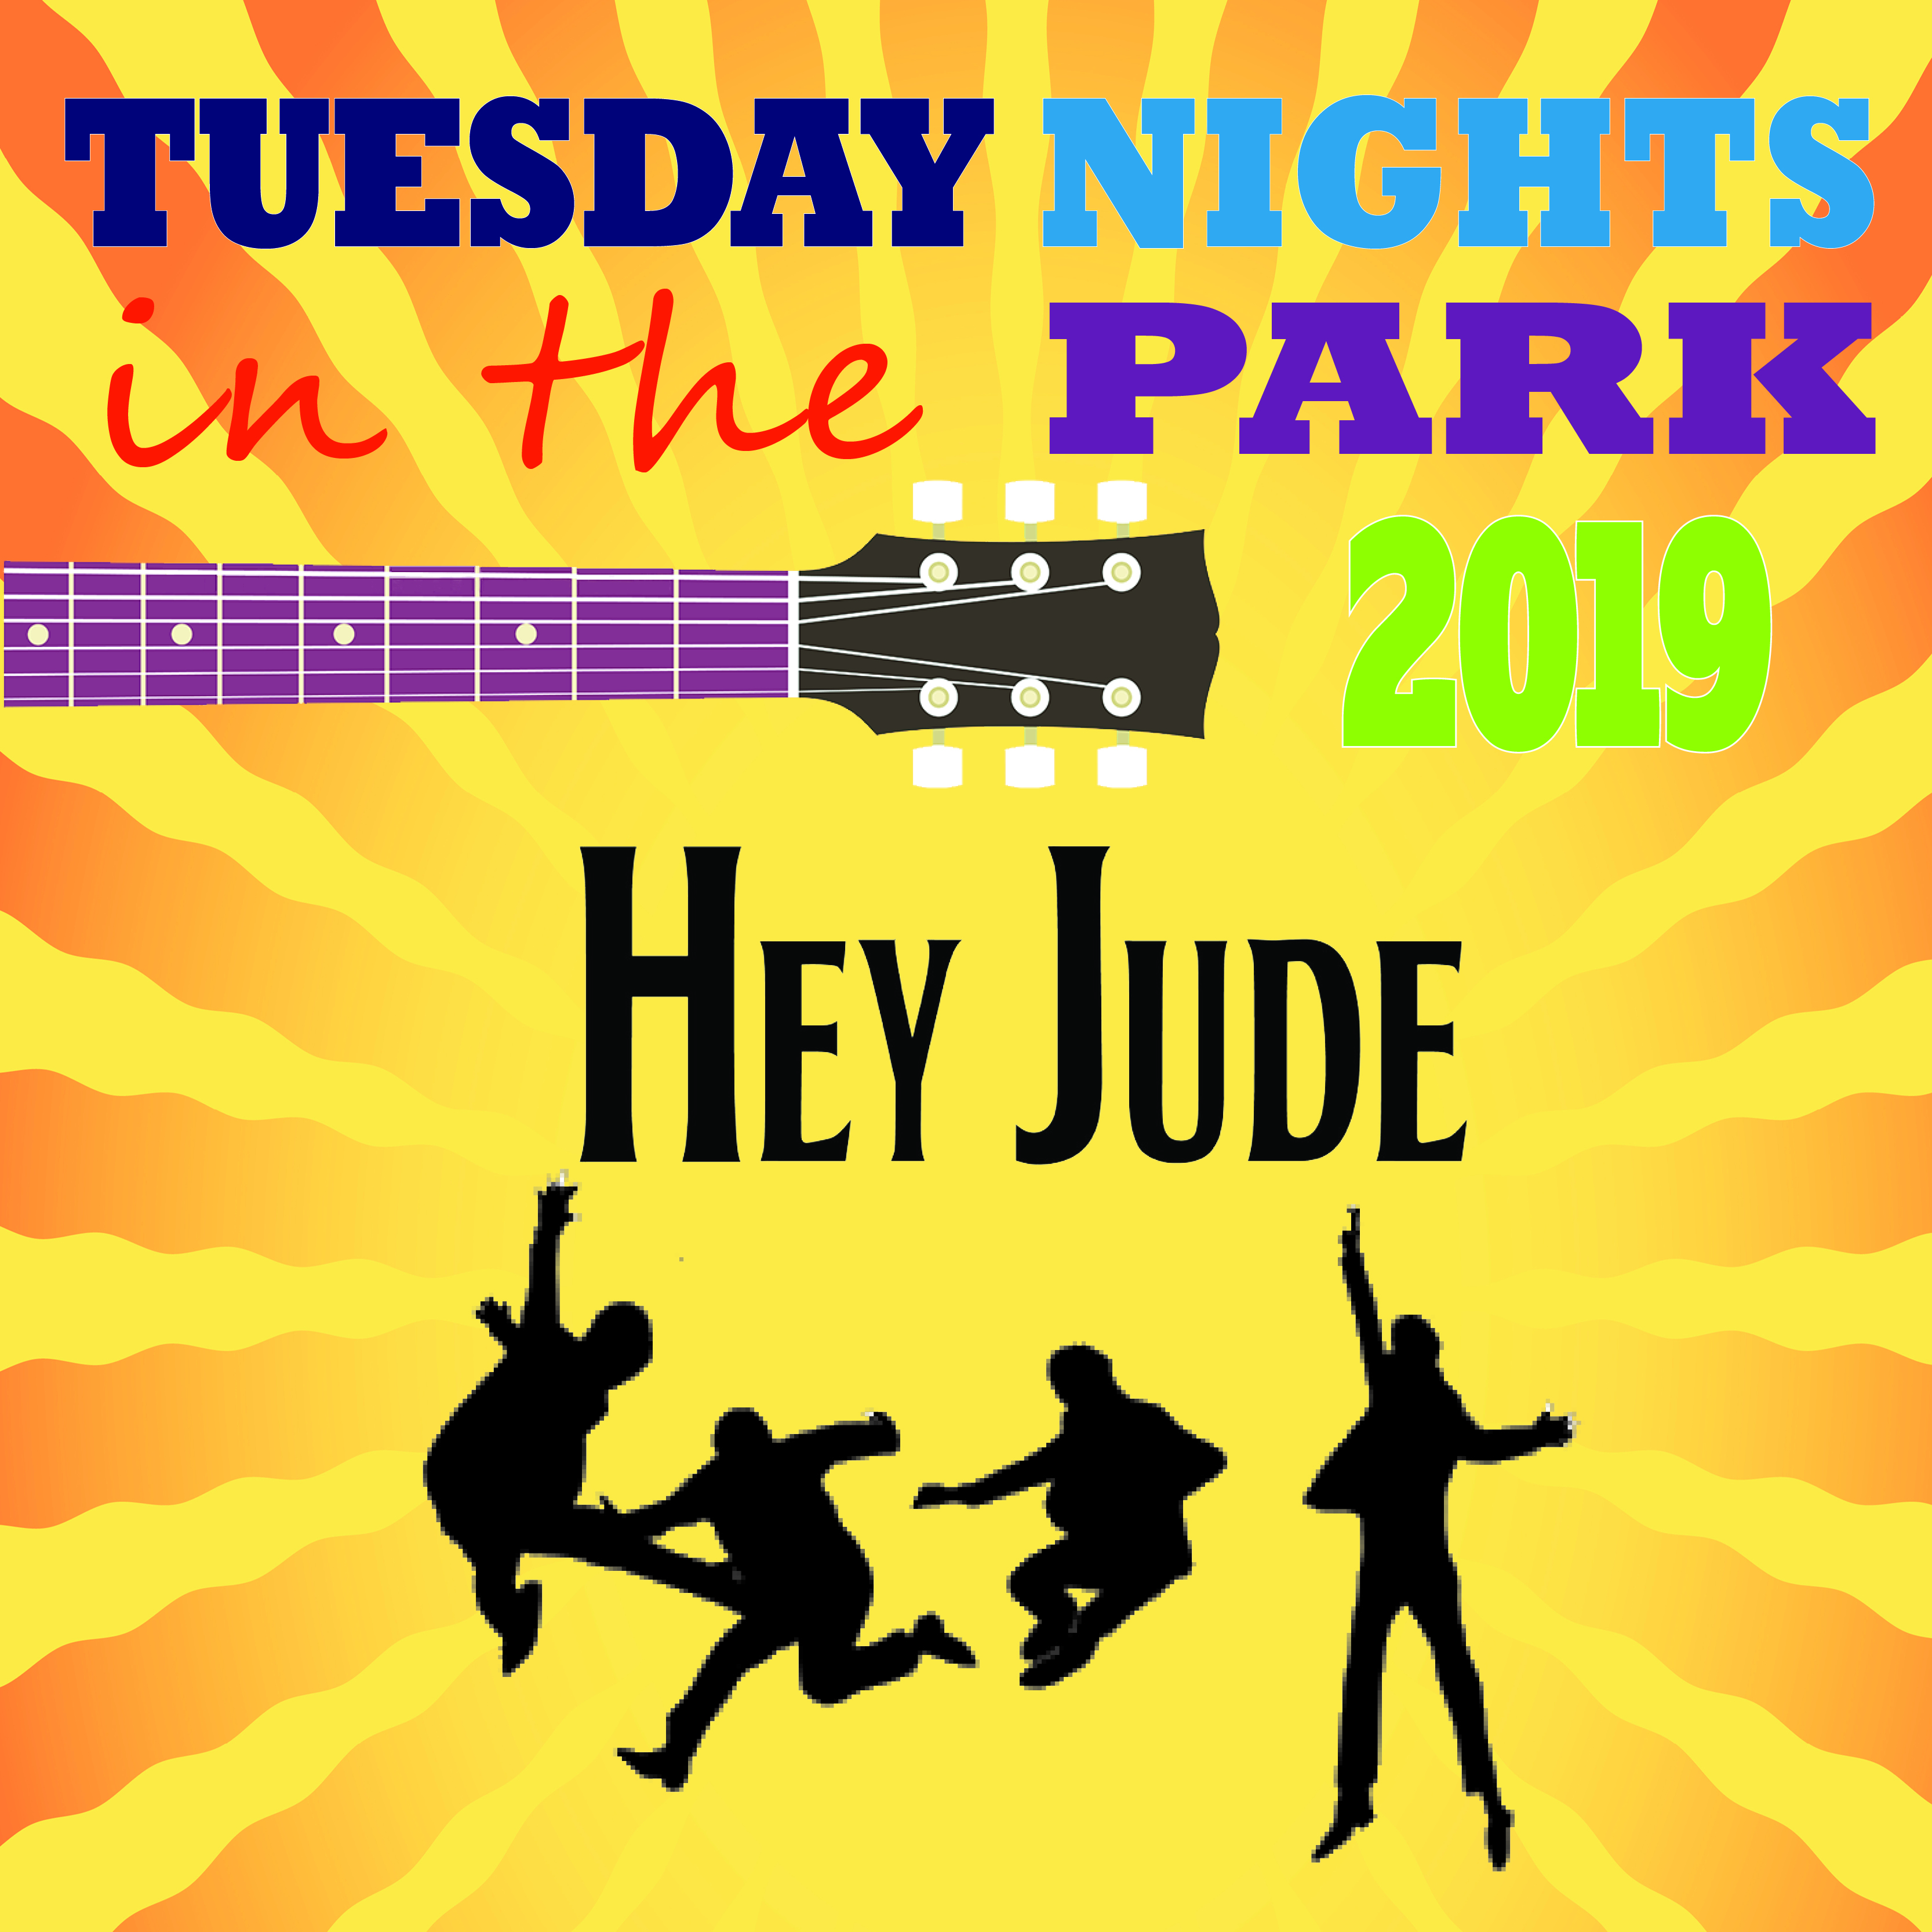 Tuesday Nights in the Park Concert - Hey Jude @ Cook Park, Frank A Leak Amphitheater for the Arts